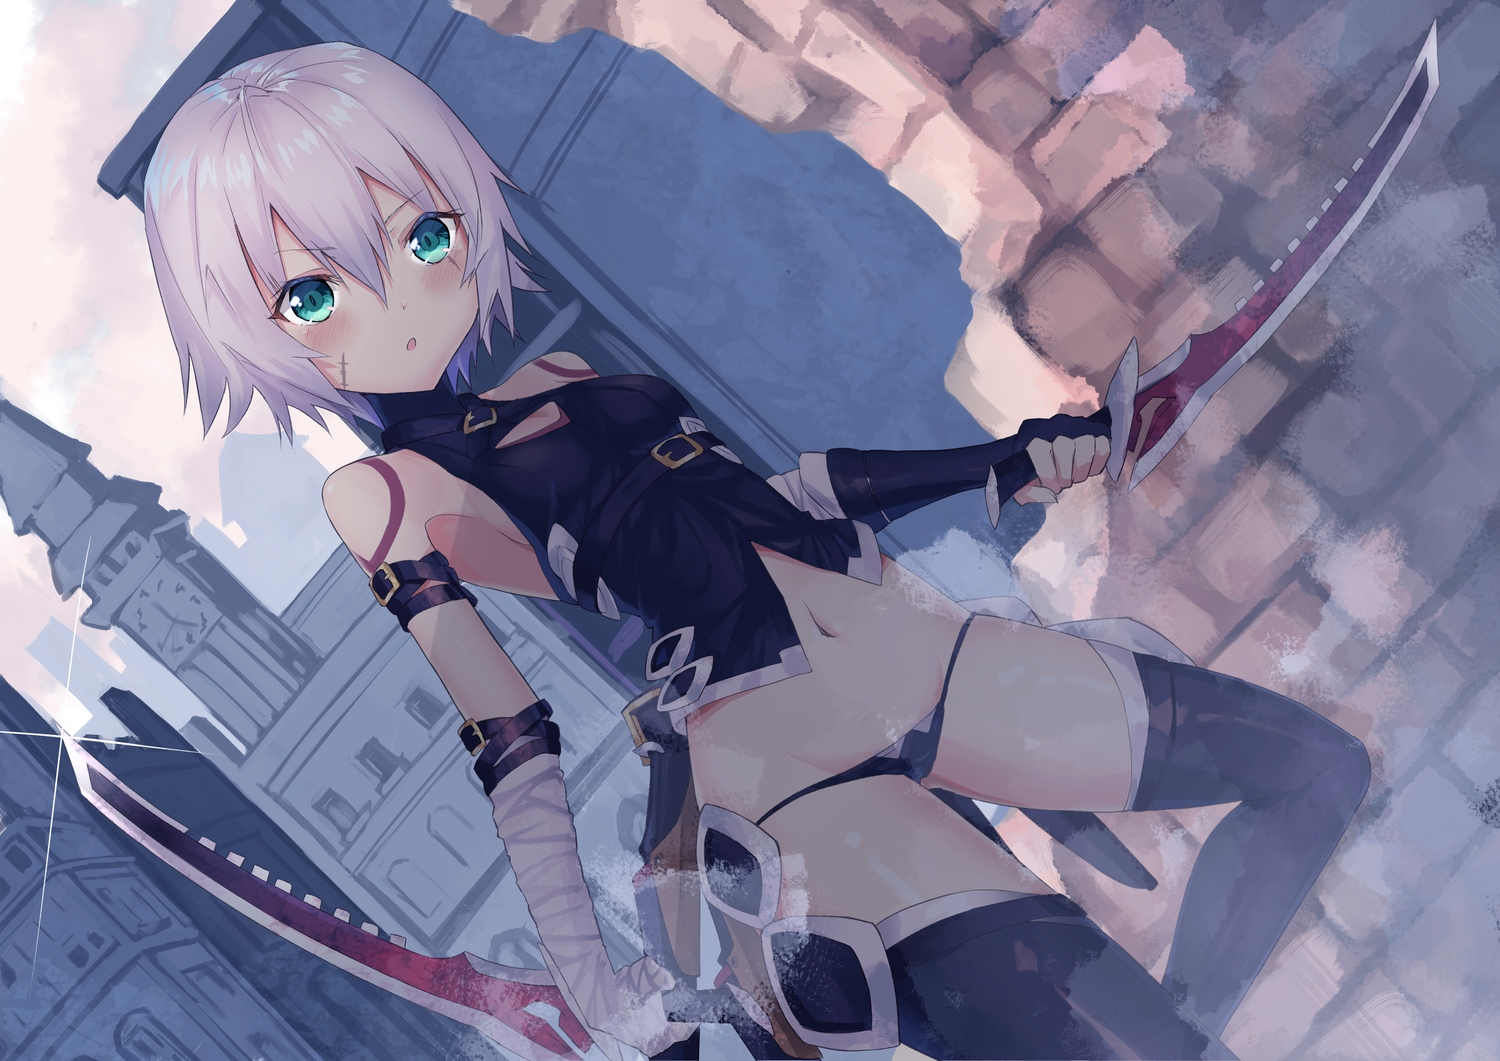 Aliasing Building Fate Apocrypha Fate Series Green Eyes Jack The